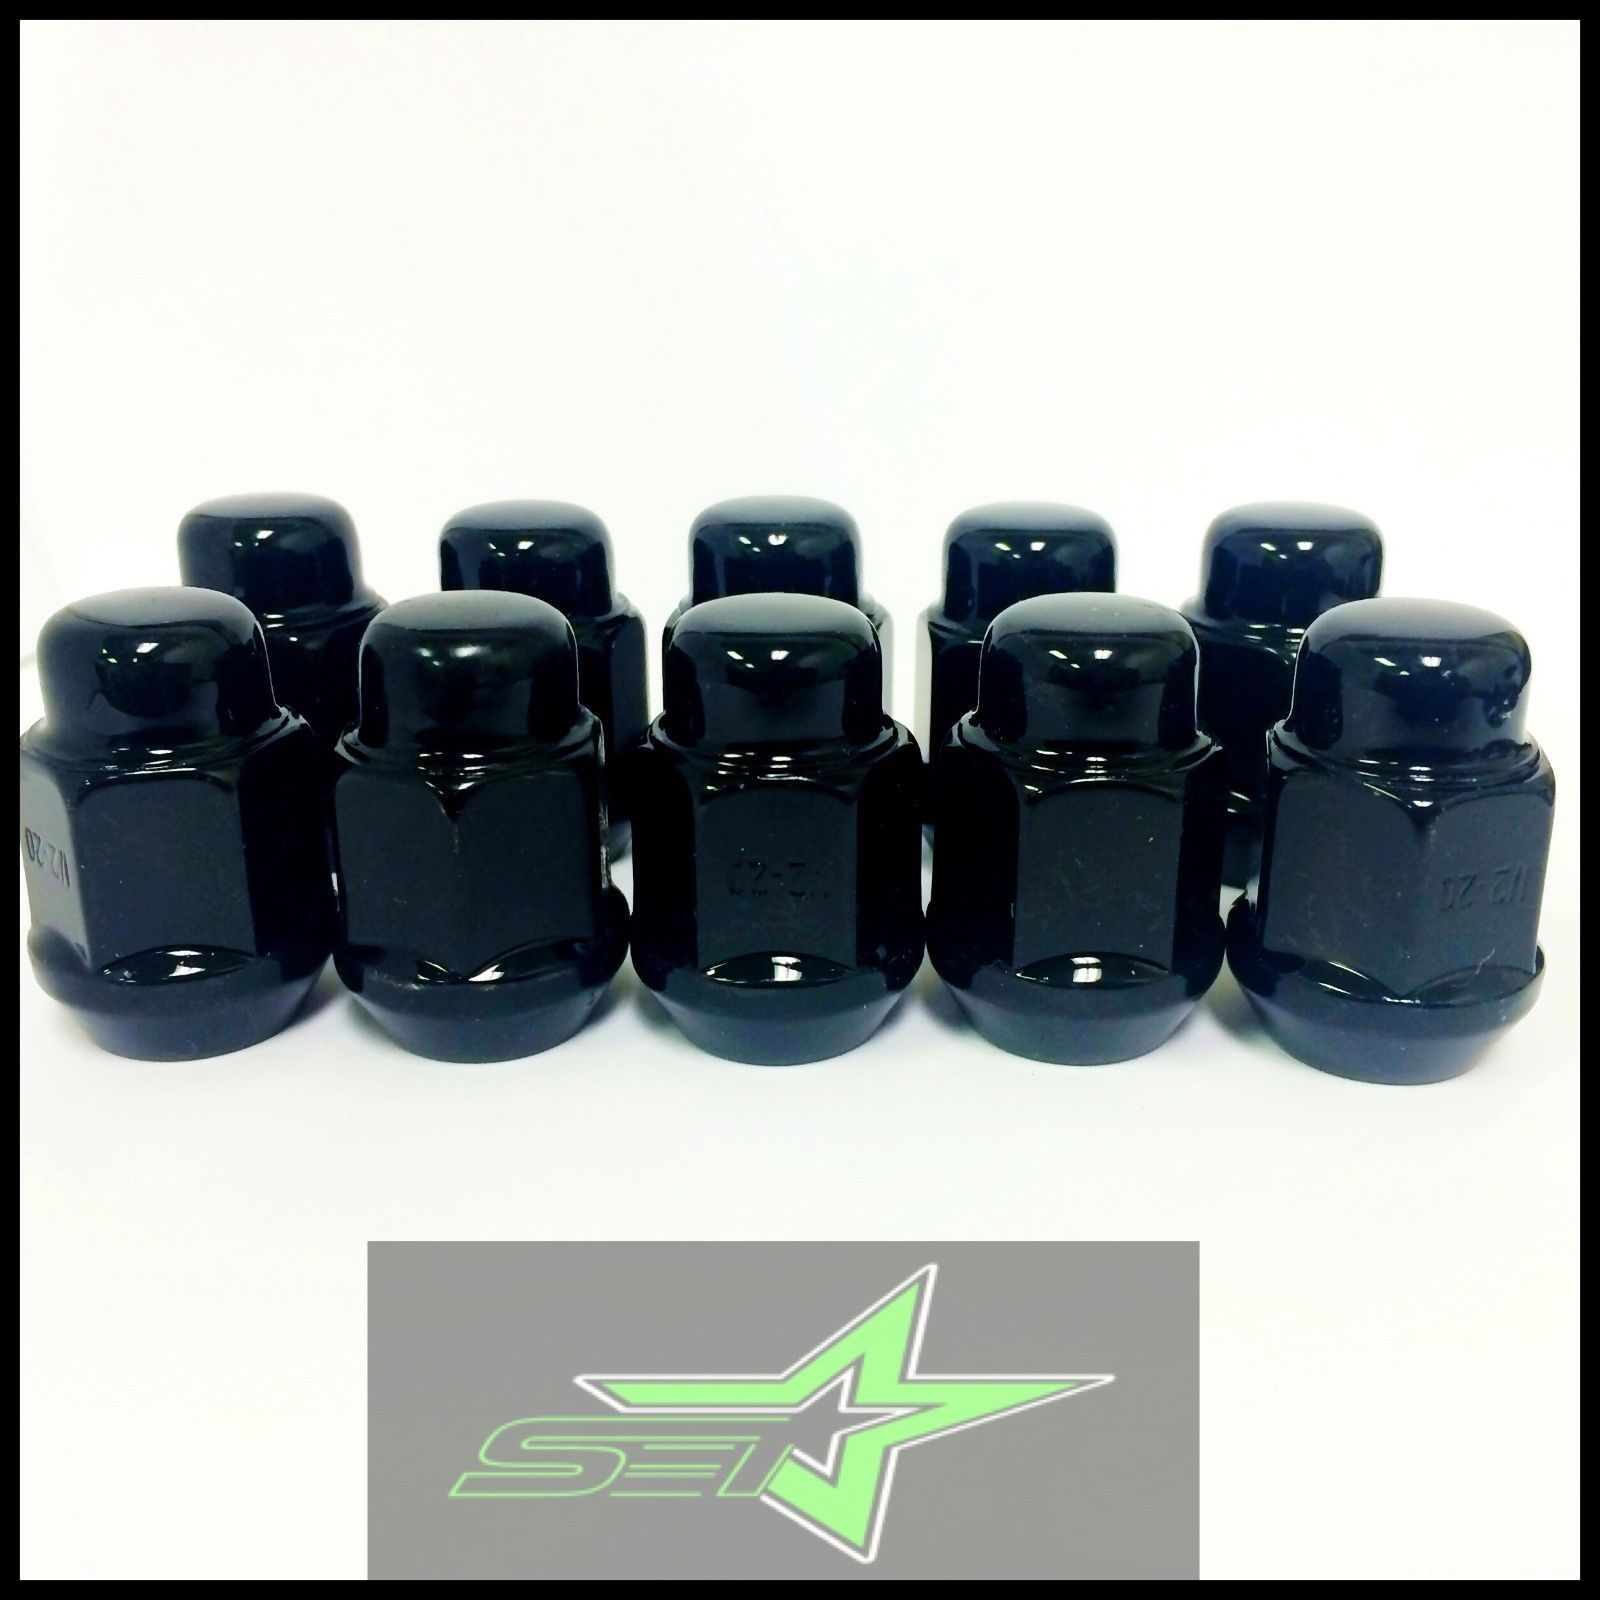 20 Black Lug Nuts 14x1 5 Mopar Dodge Challenger Charger Magnum 5x115 Lugs 2012 Jeep Forged Steel Dodge Challenger